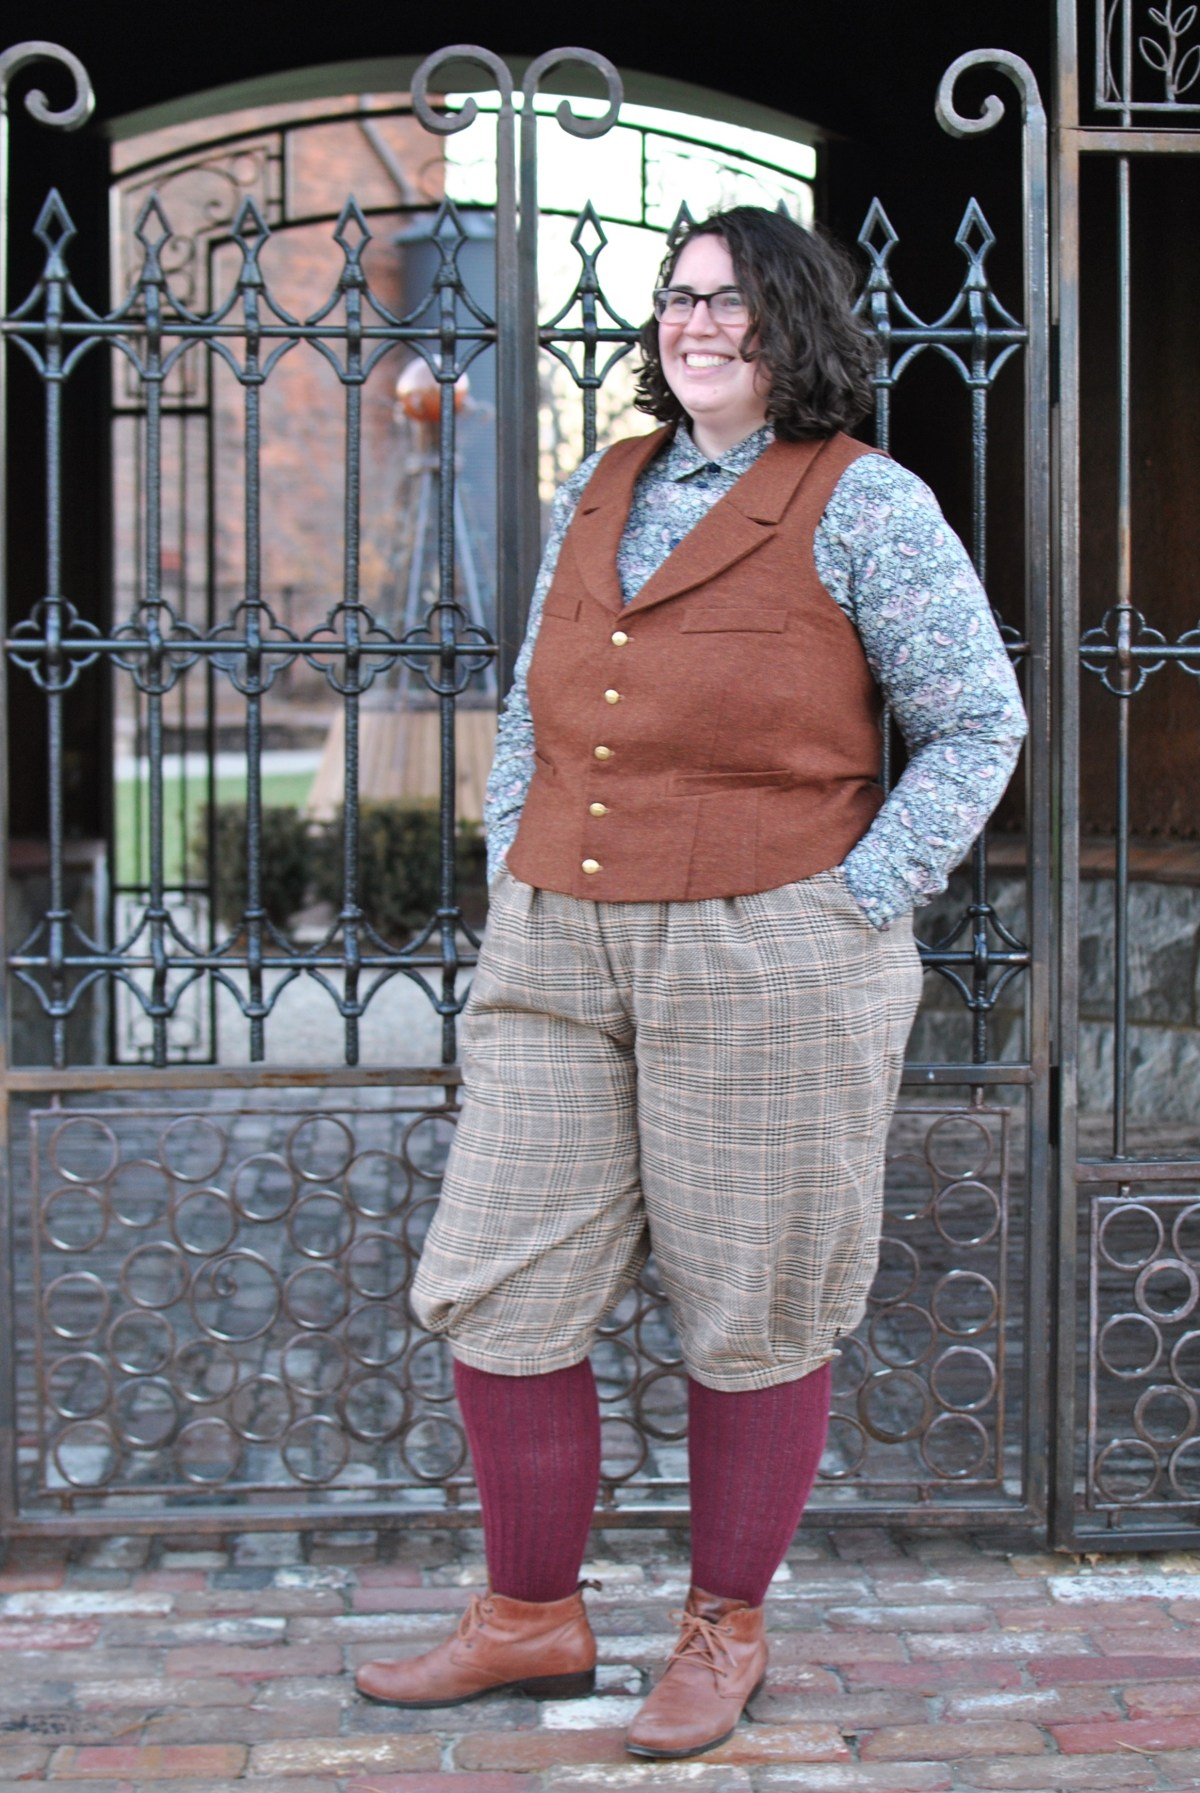 Shannon poses in front of a gate, wearing tan plaid knickerpockers, a rust vest, burgundy knee-socks, and a blue floral button-down shirt